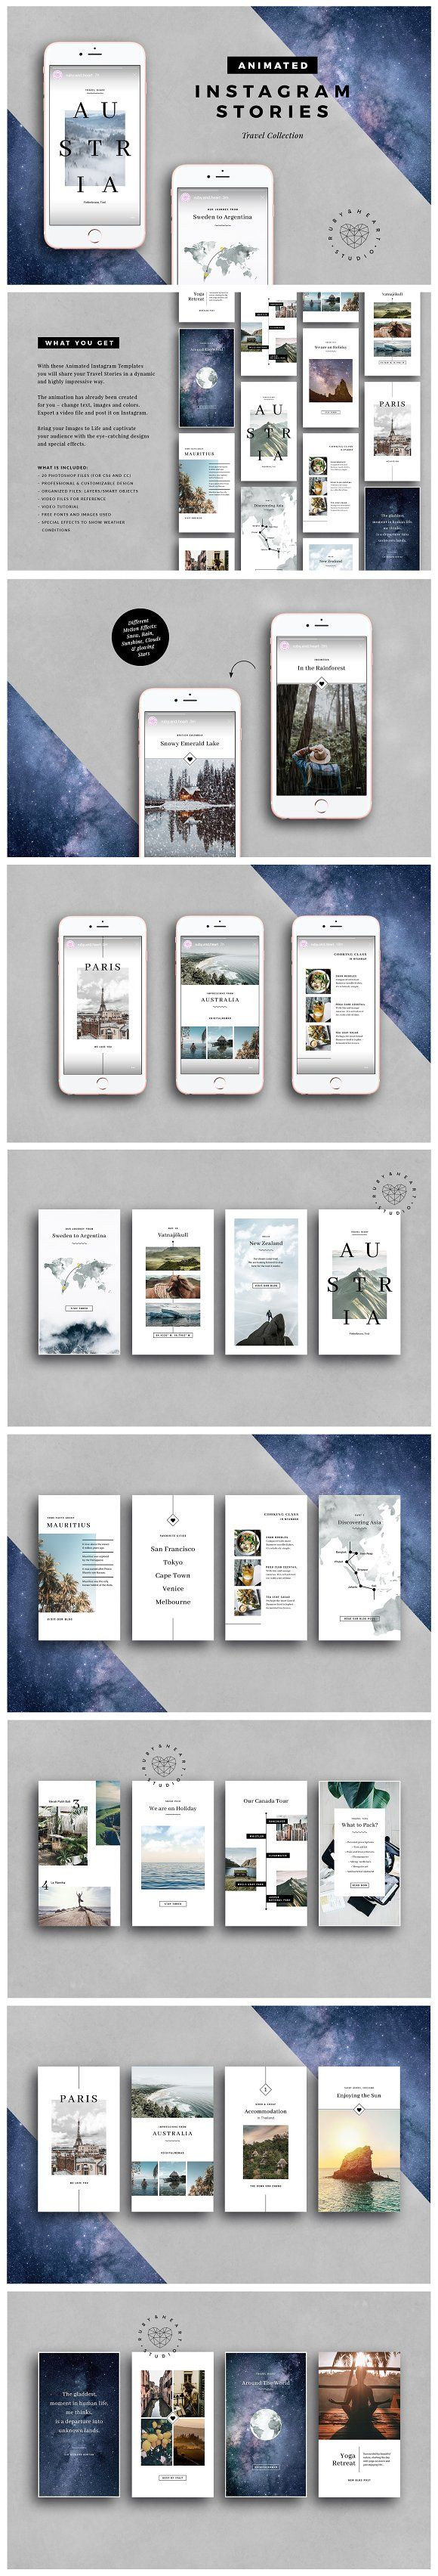 ANIMATED Travel Instagram Stories by Ruby&Heart Studio on @creativemarket